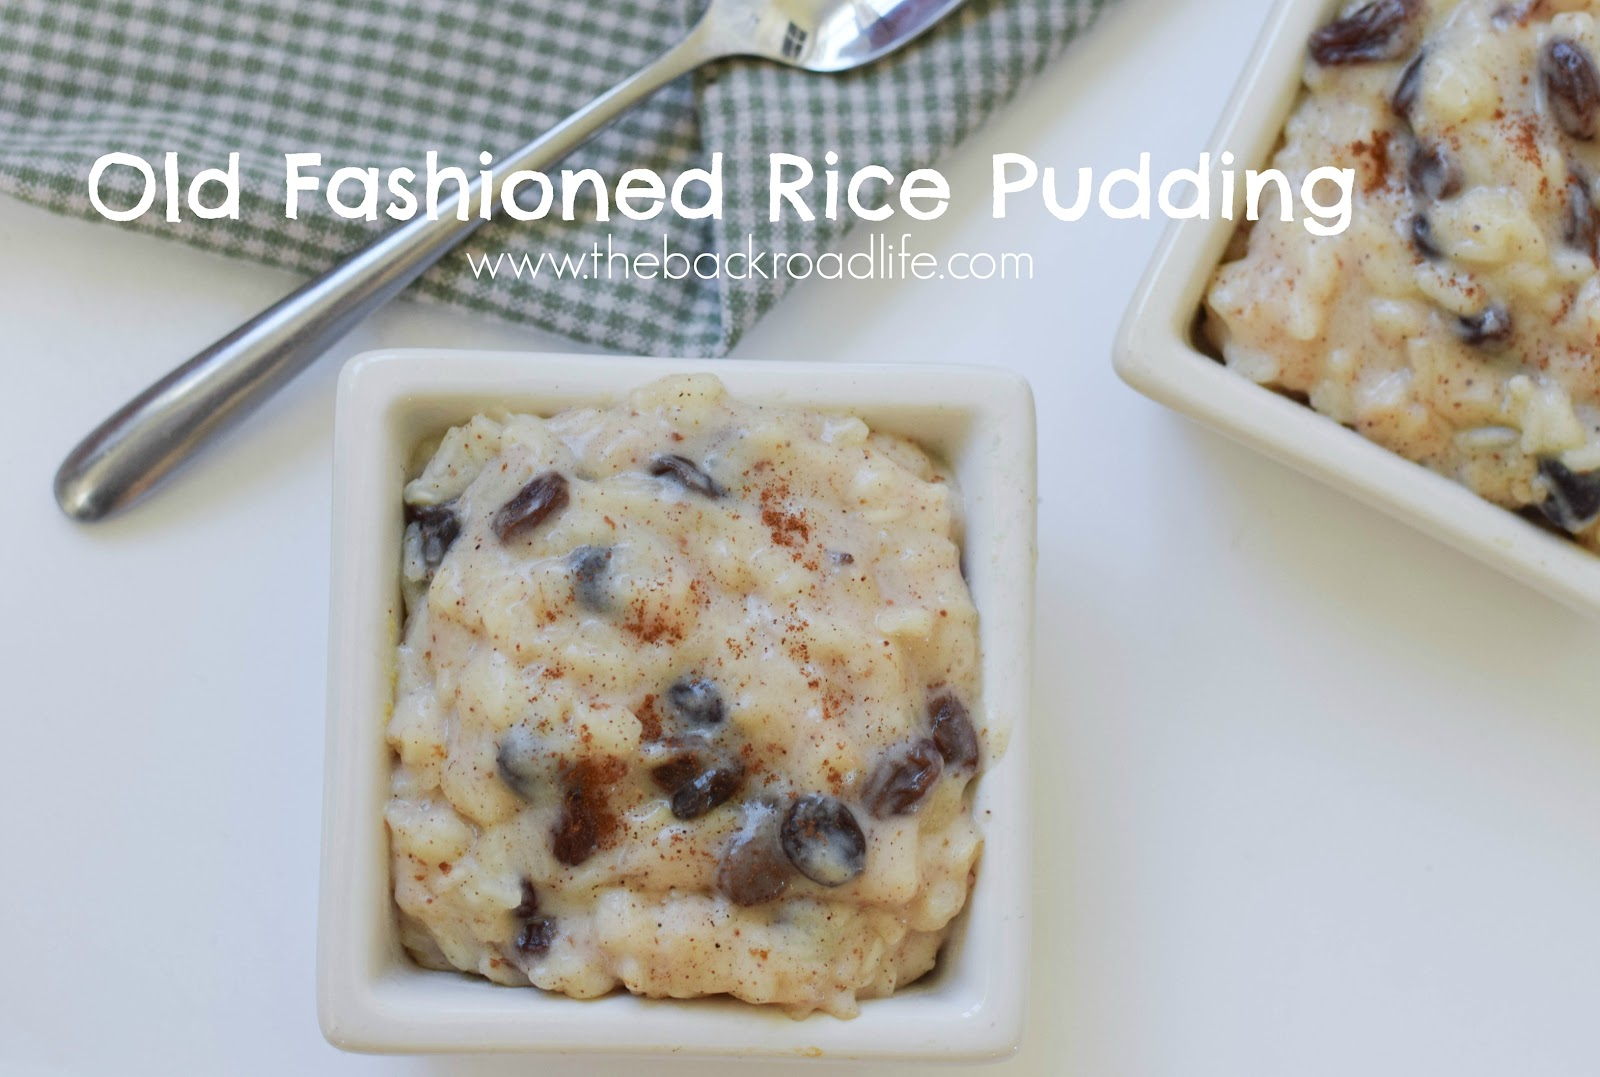 Old Fashioned Rice pudding.jpg